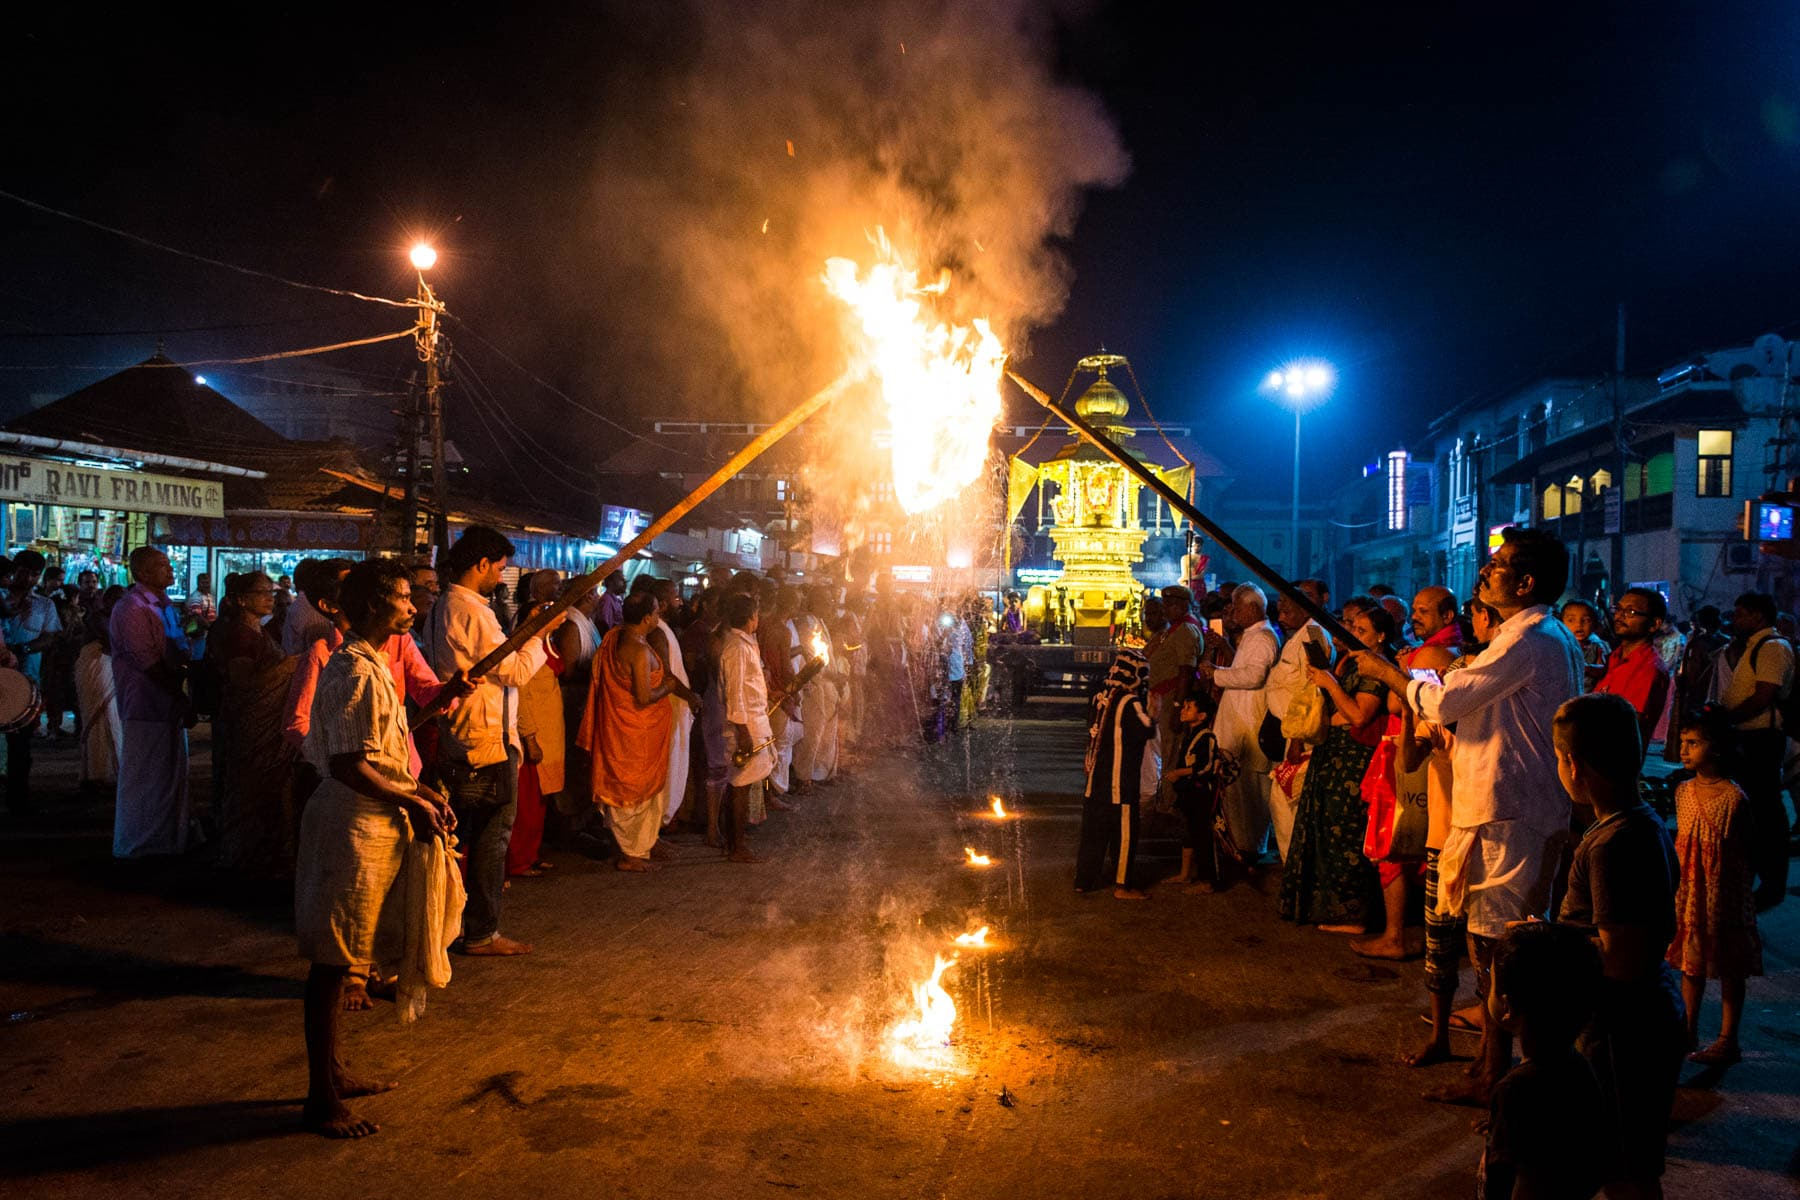 Off the beaten track places to visit in Karnataka, India - A procession outside the Krishna Mutt temple in Udupi - Lost With Purpose